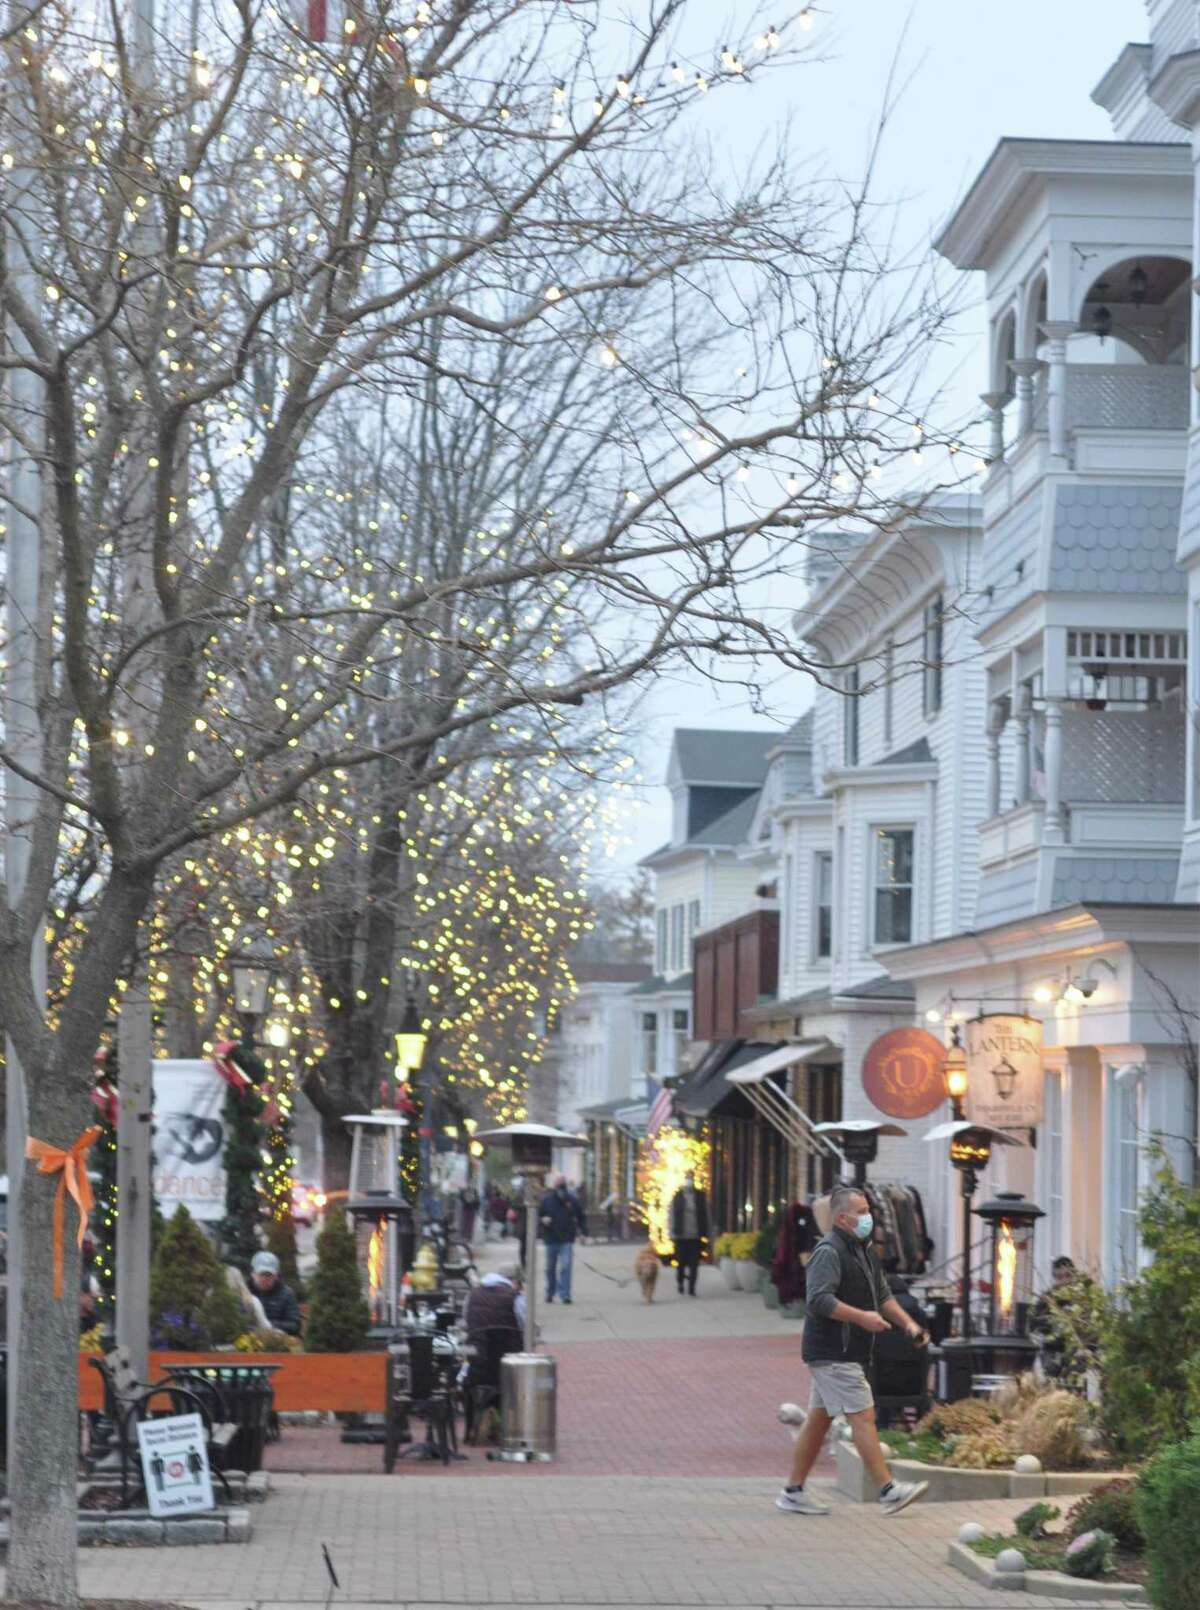 Main Street welcomes shoppers this holiday season, with social distancing practiced at businesses. In a tough year, many business could use help.